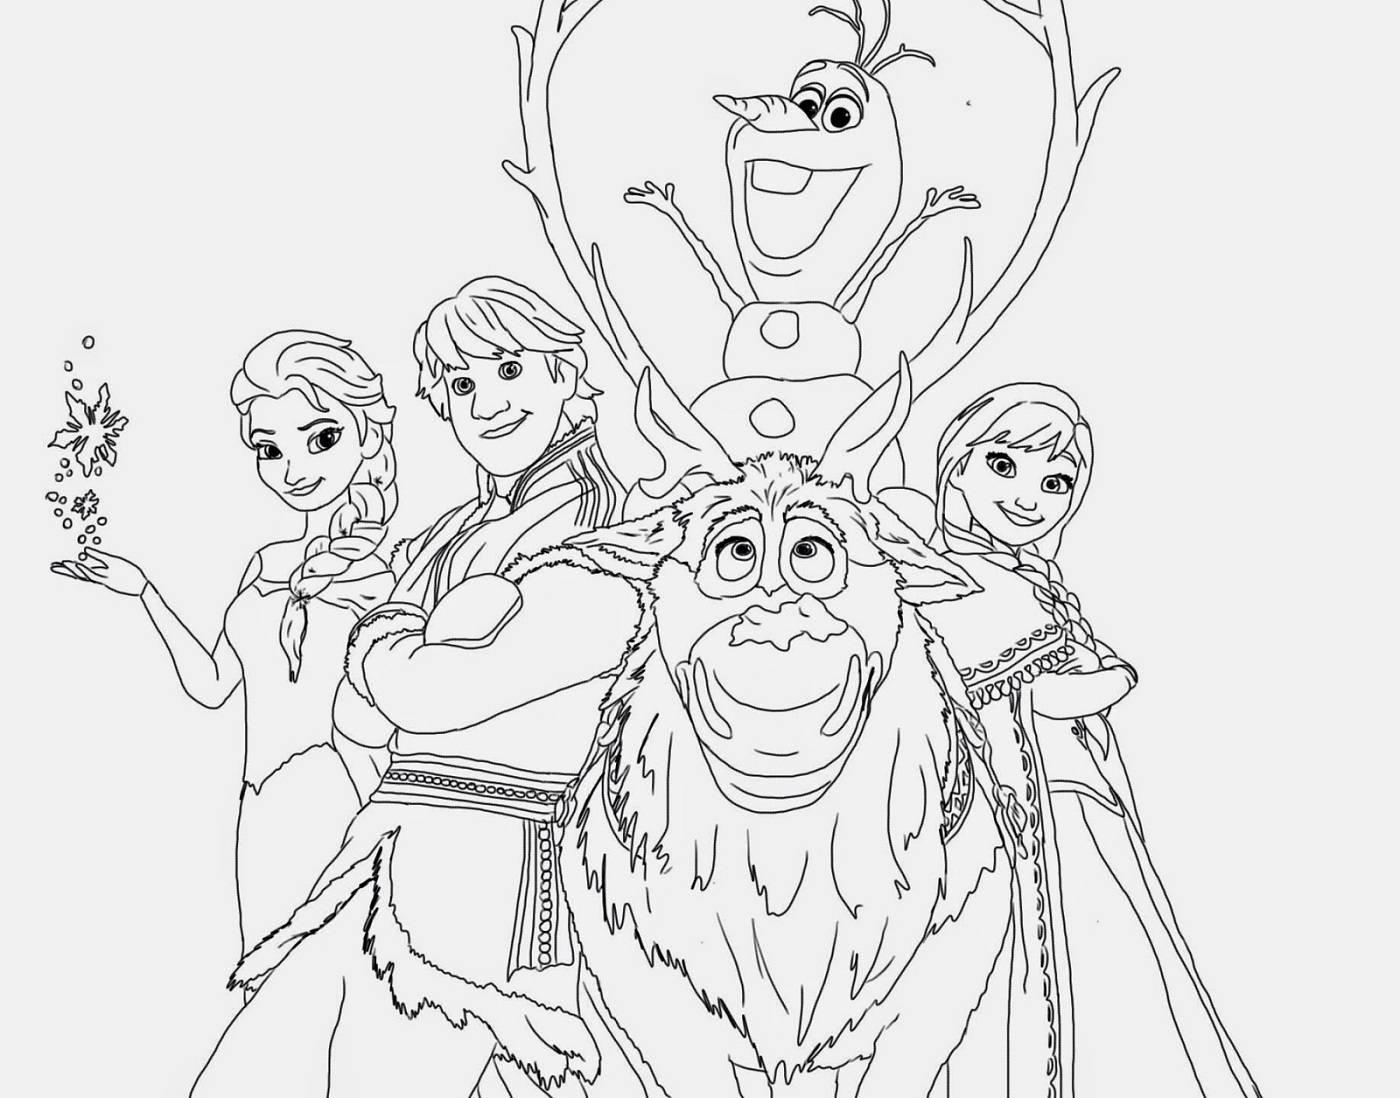 coloring pictures of frozen characters frozen christmas all characters coloring pages printable characters pictures frozen coloring of